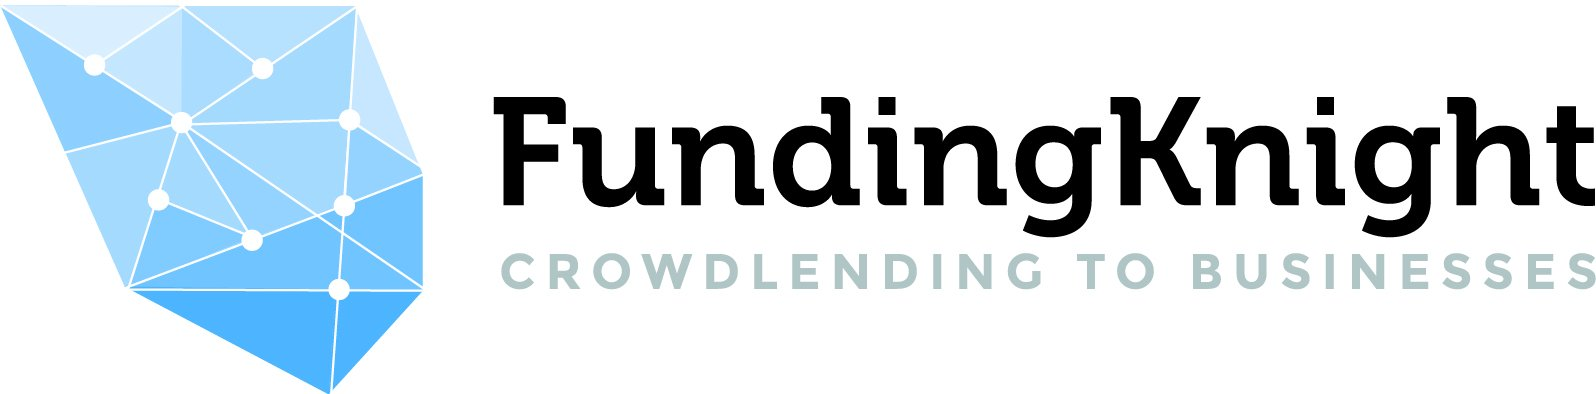 FundingKnight-logo